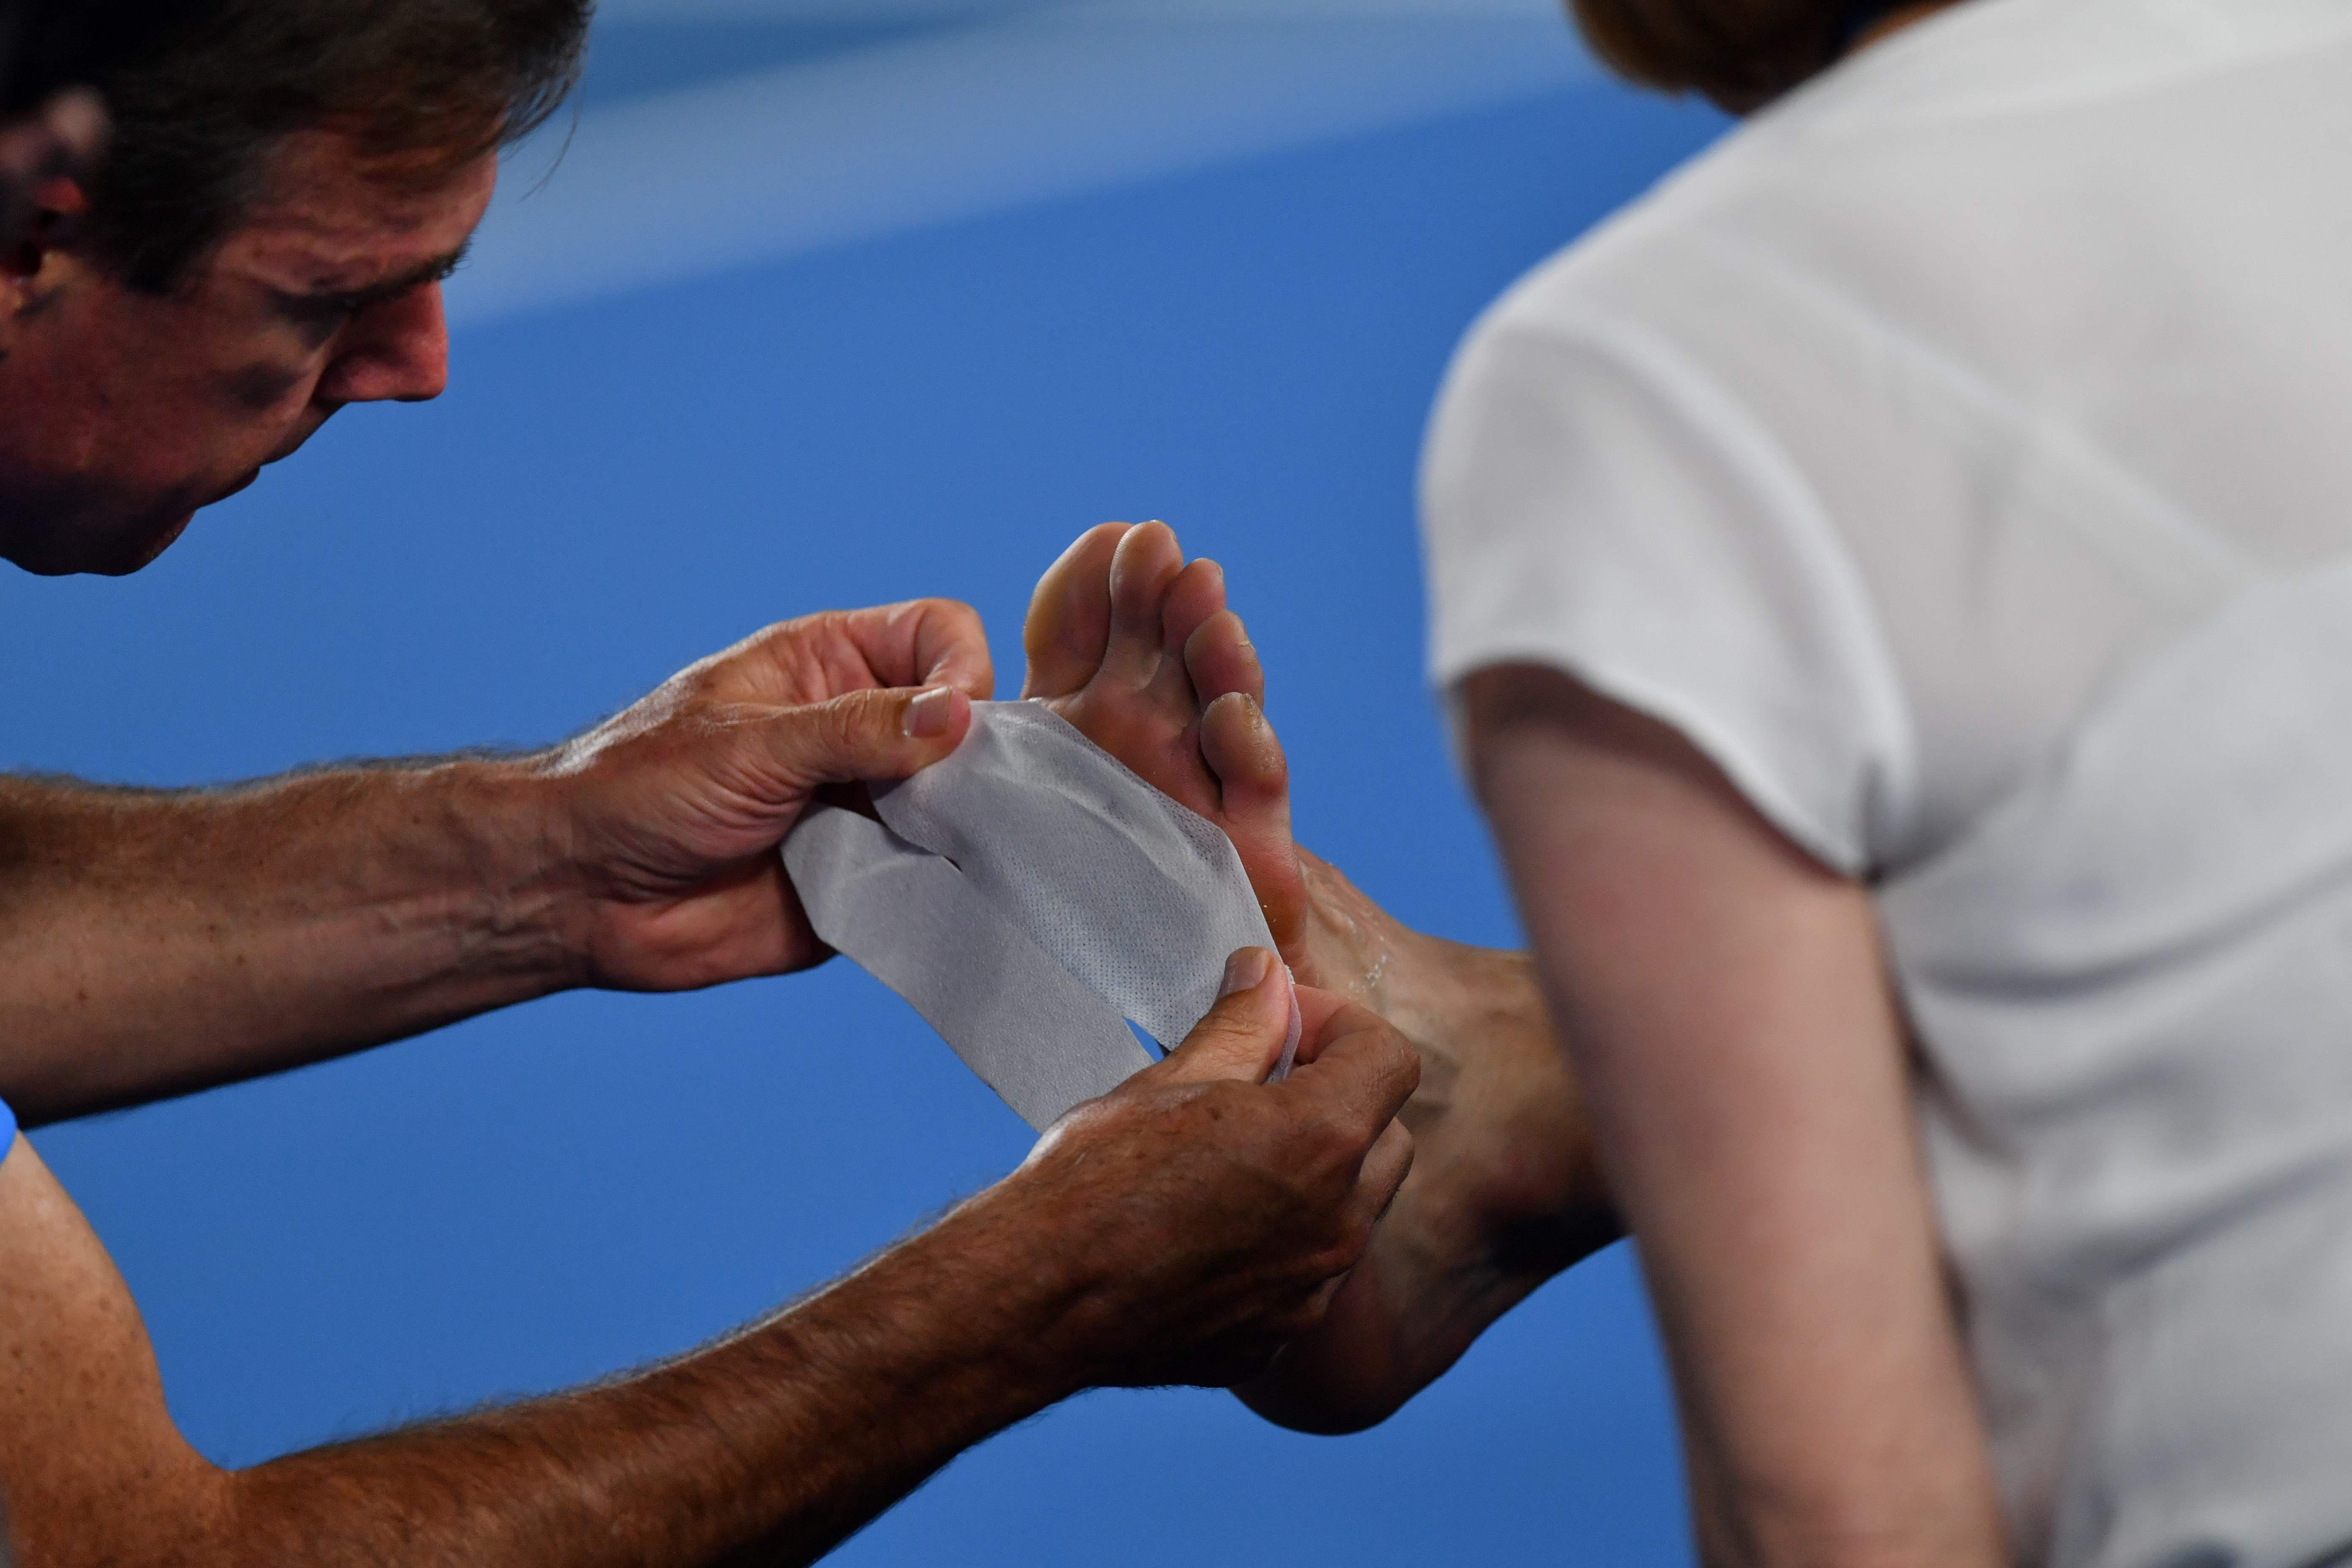 Medical team take a look at Chung Hyeon's foot during Roger Federer clash